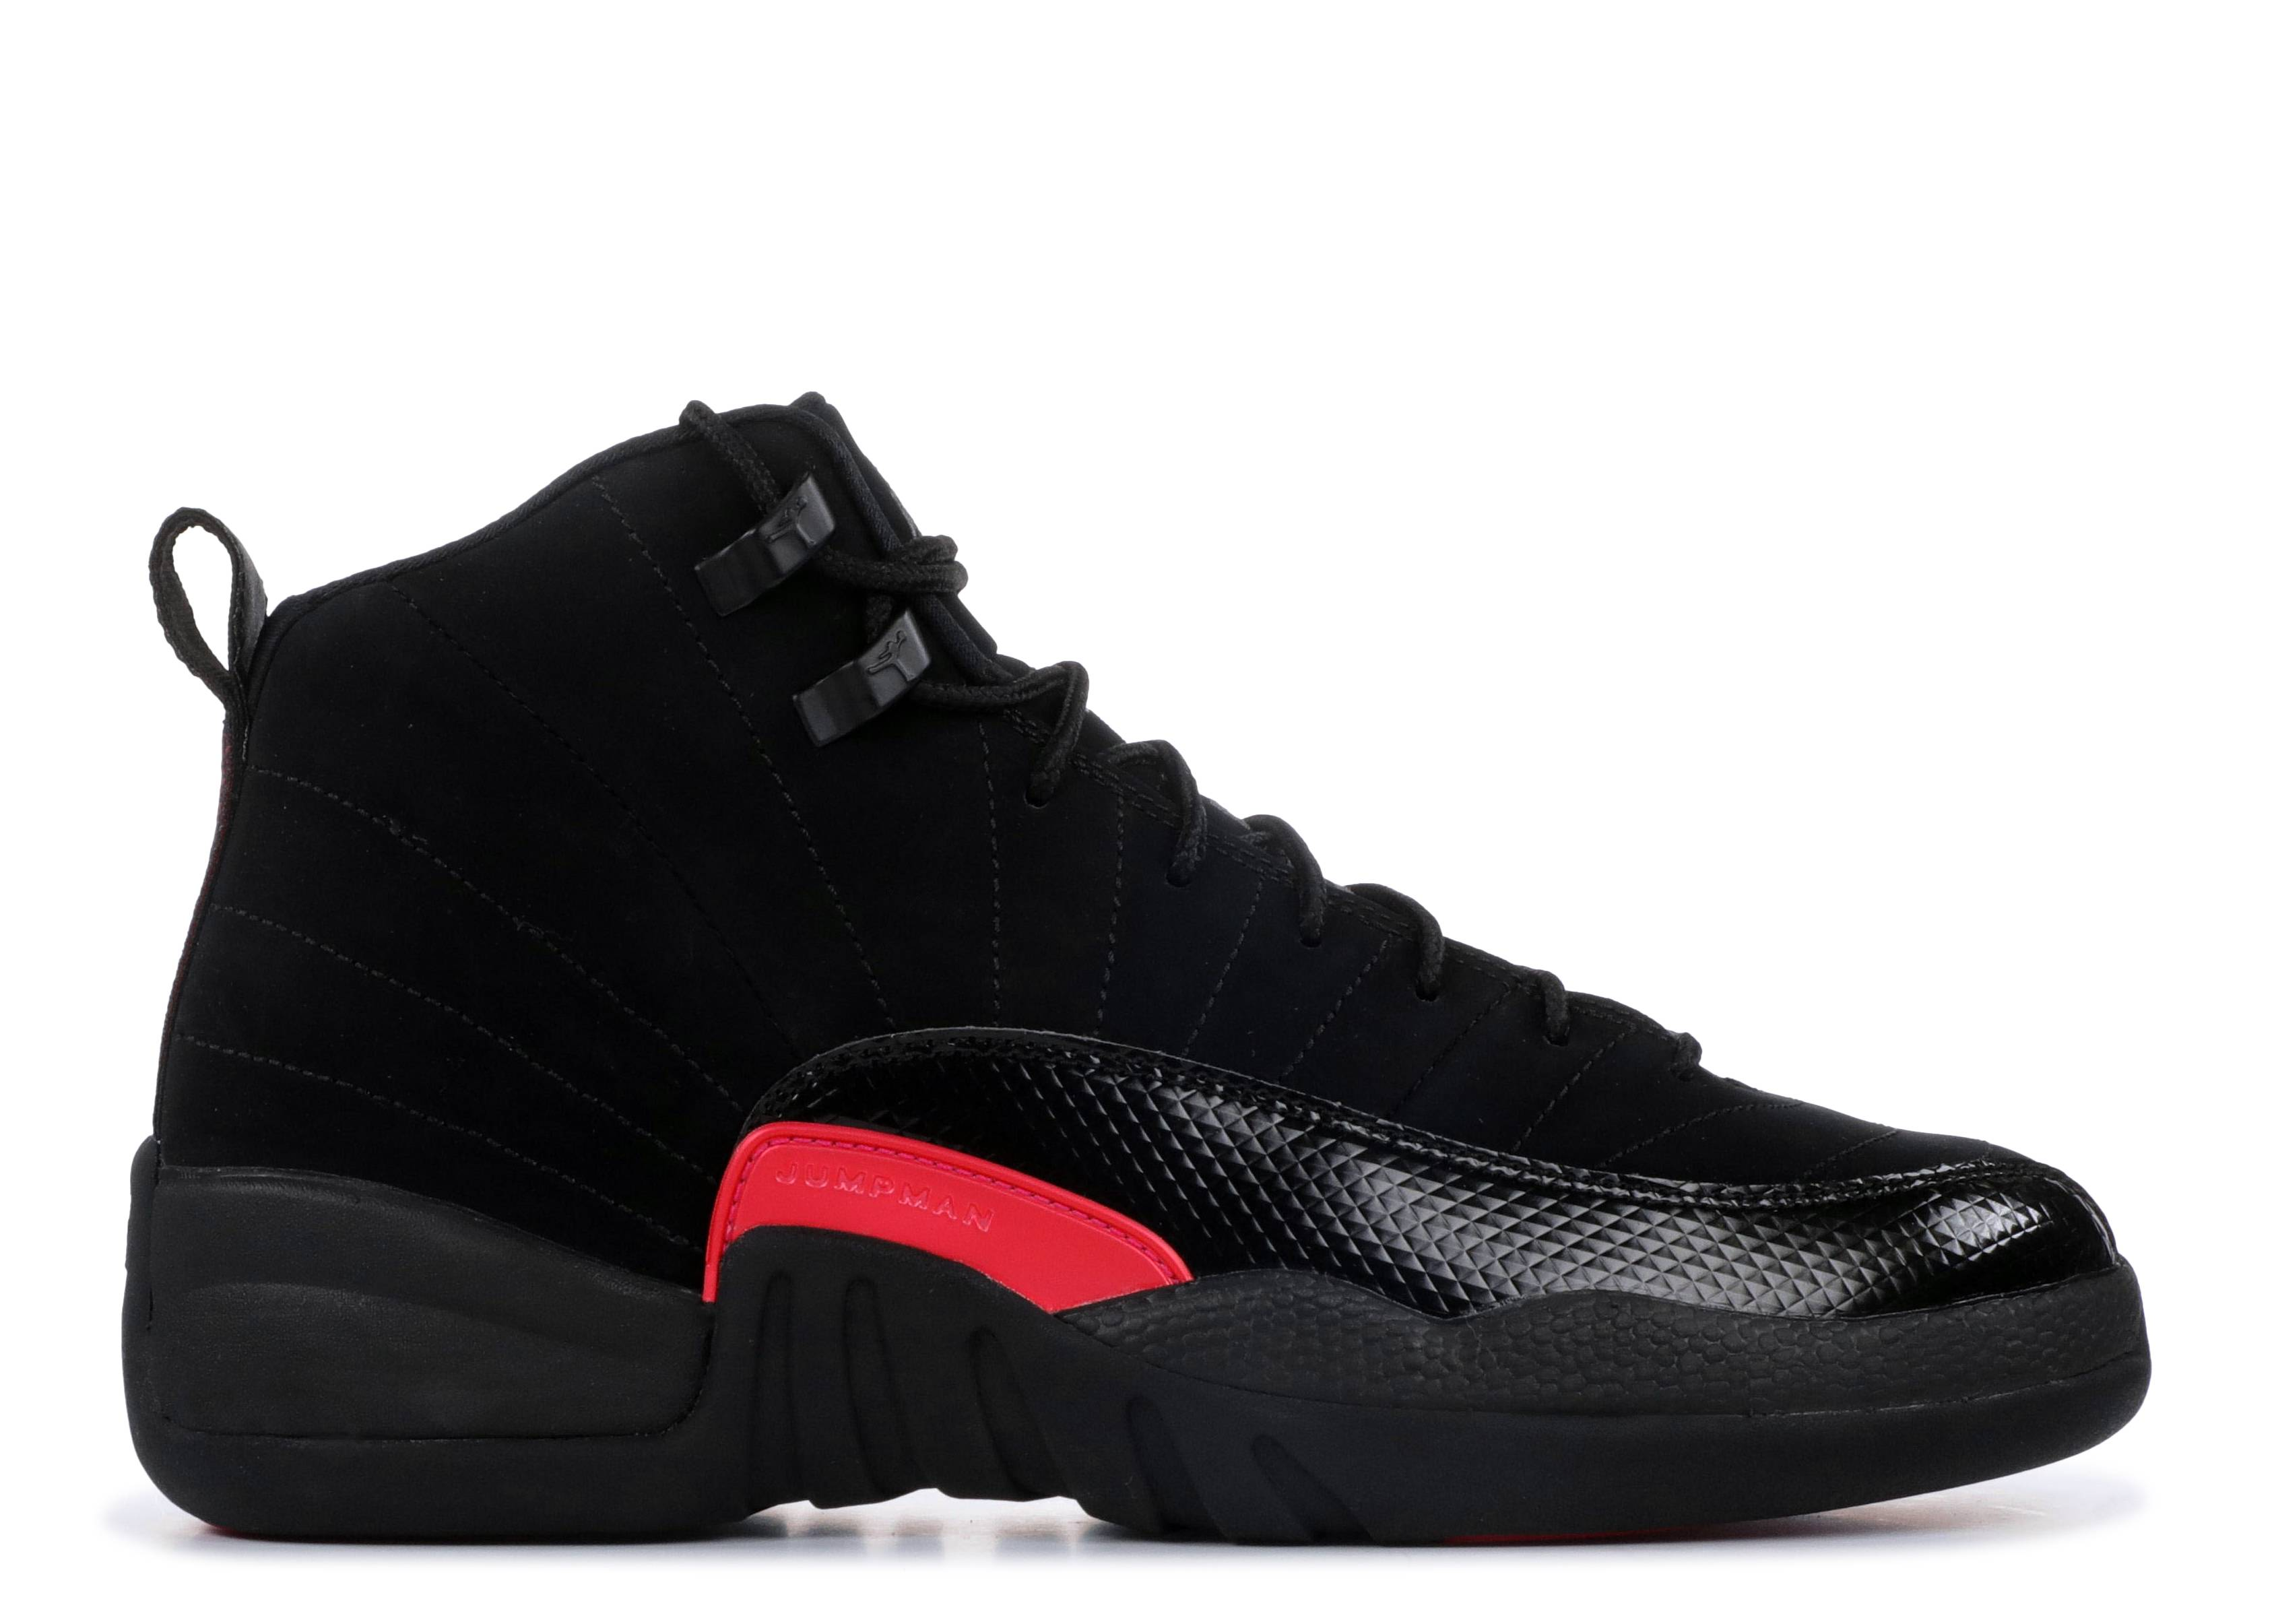 7f20e5213daed1 Air Jordan 12 (XII) Shoes - Nike